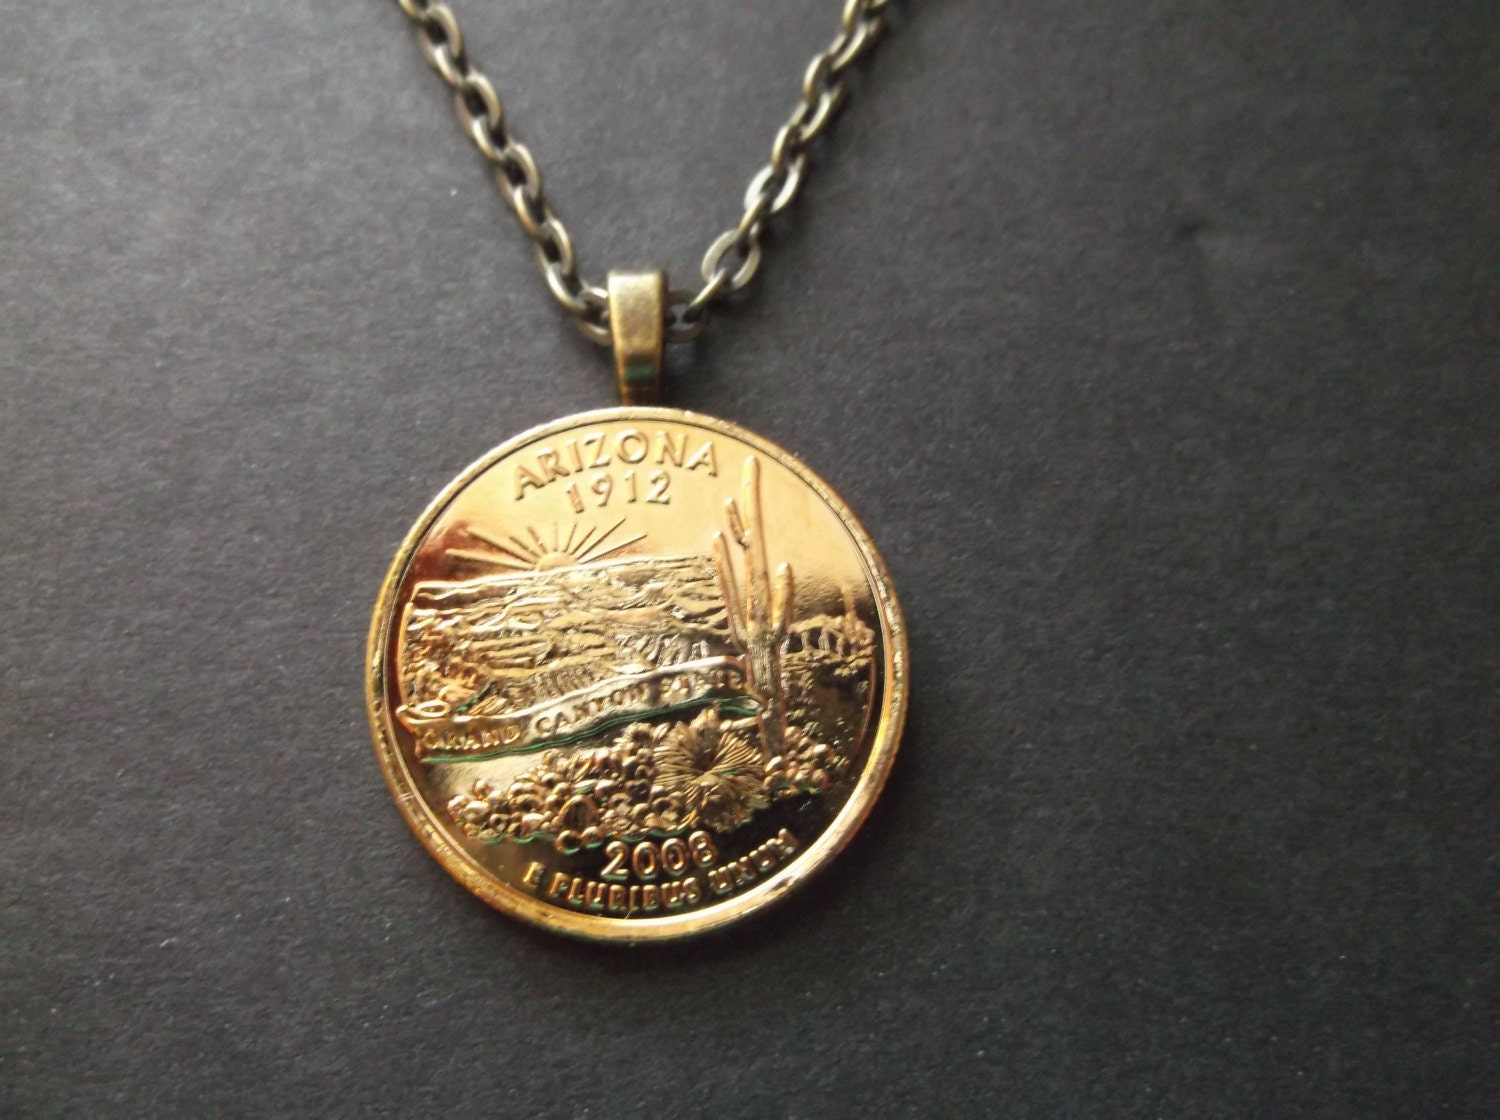 Arizona United States Gold Colored Quarter Coin Necklace